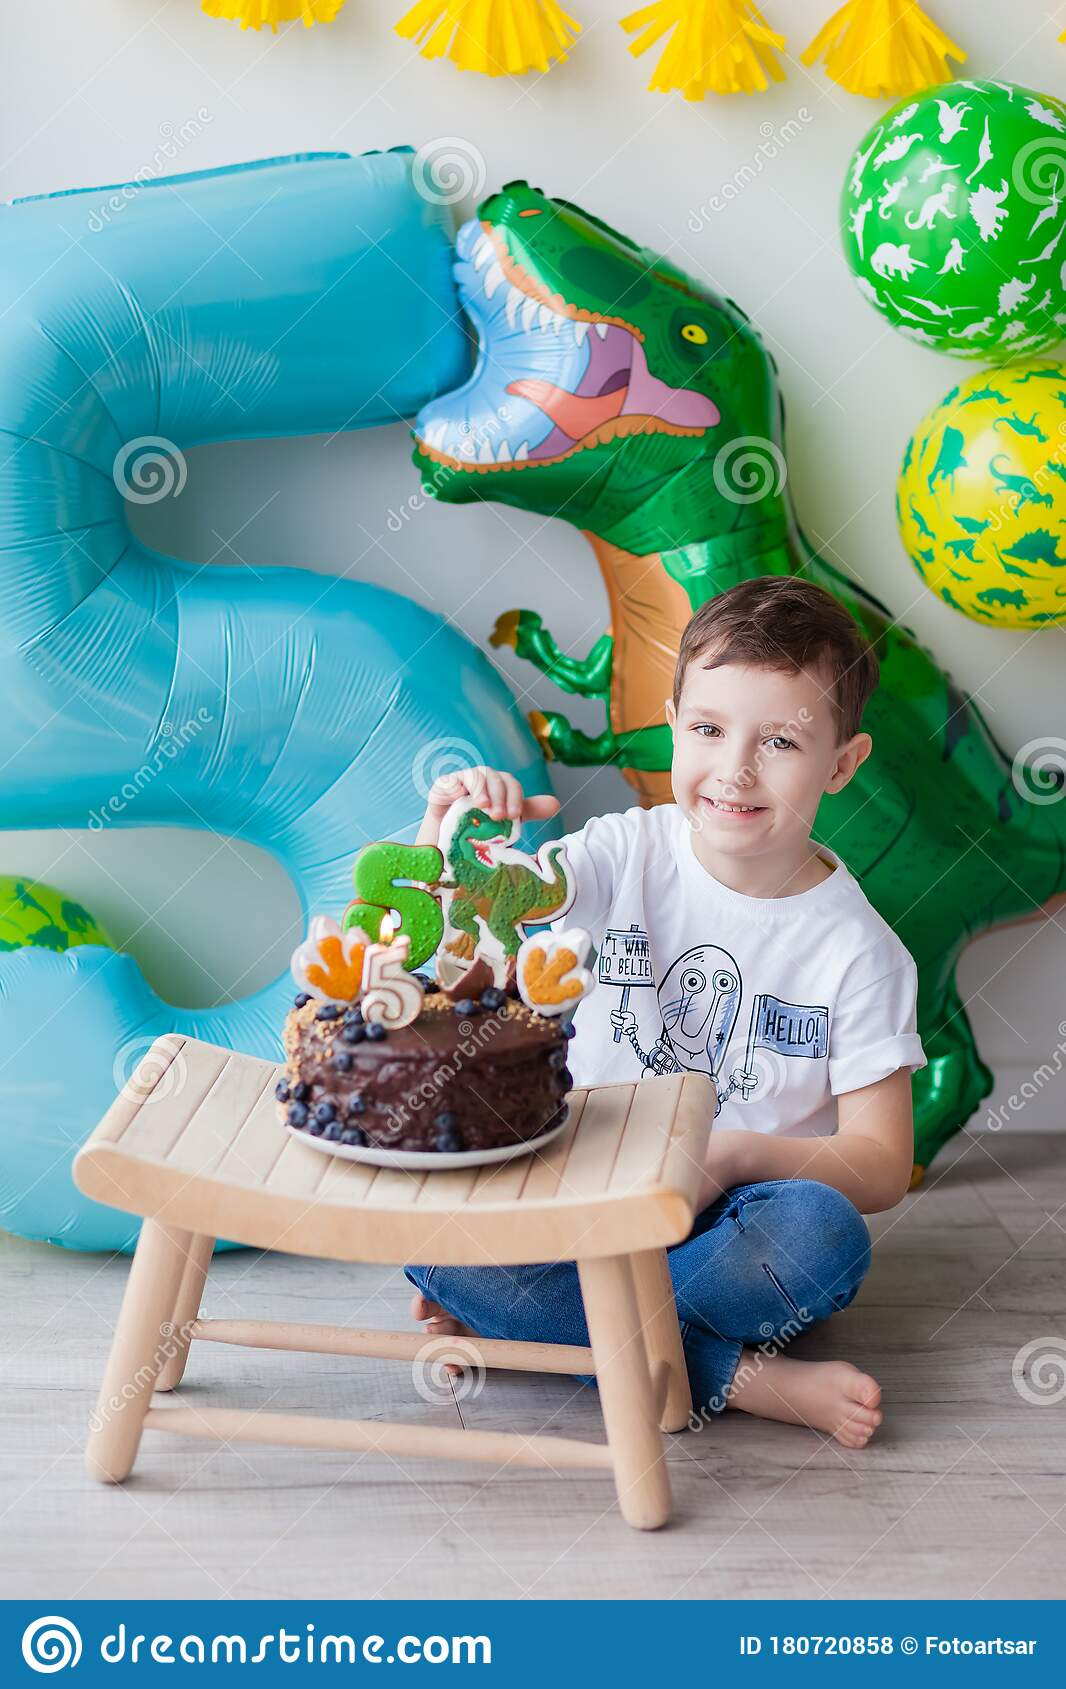 Birthday Boy A Boy Who Is 5 Years Old Sits At A Small Table With A Chocolate Birthday Cake Stock Photo Image Of Meal Flour 180720858